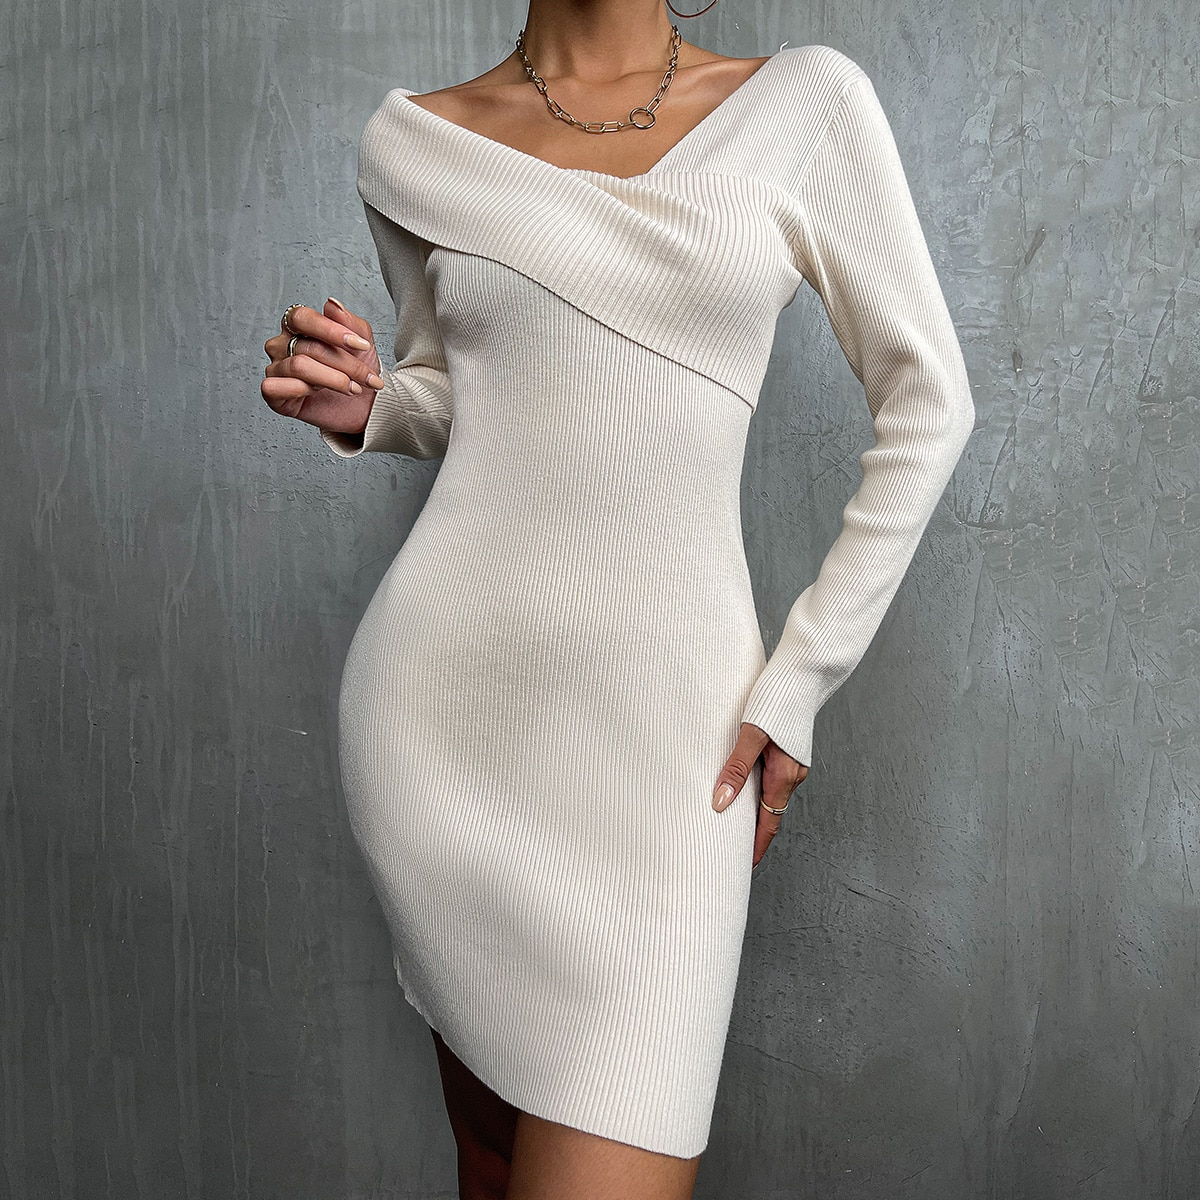 Asymmetrical Neck Sweater Dress, SHEIN  - buy with discount